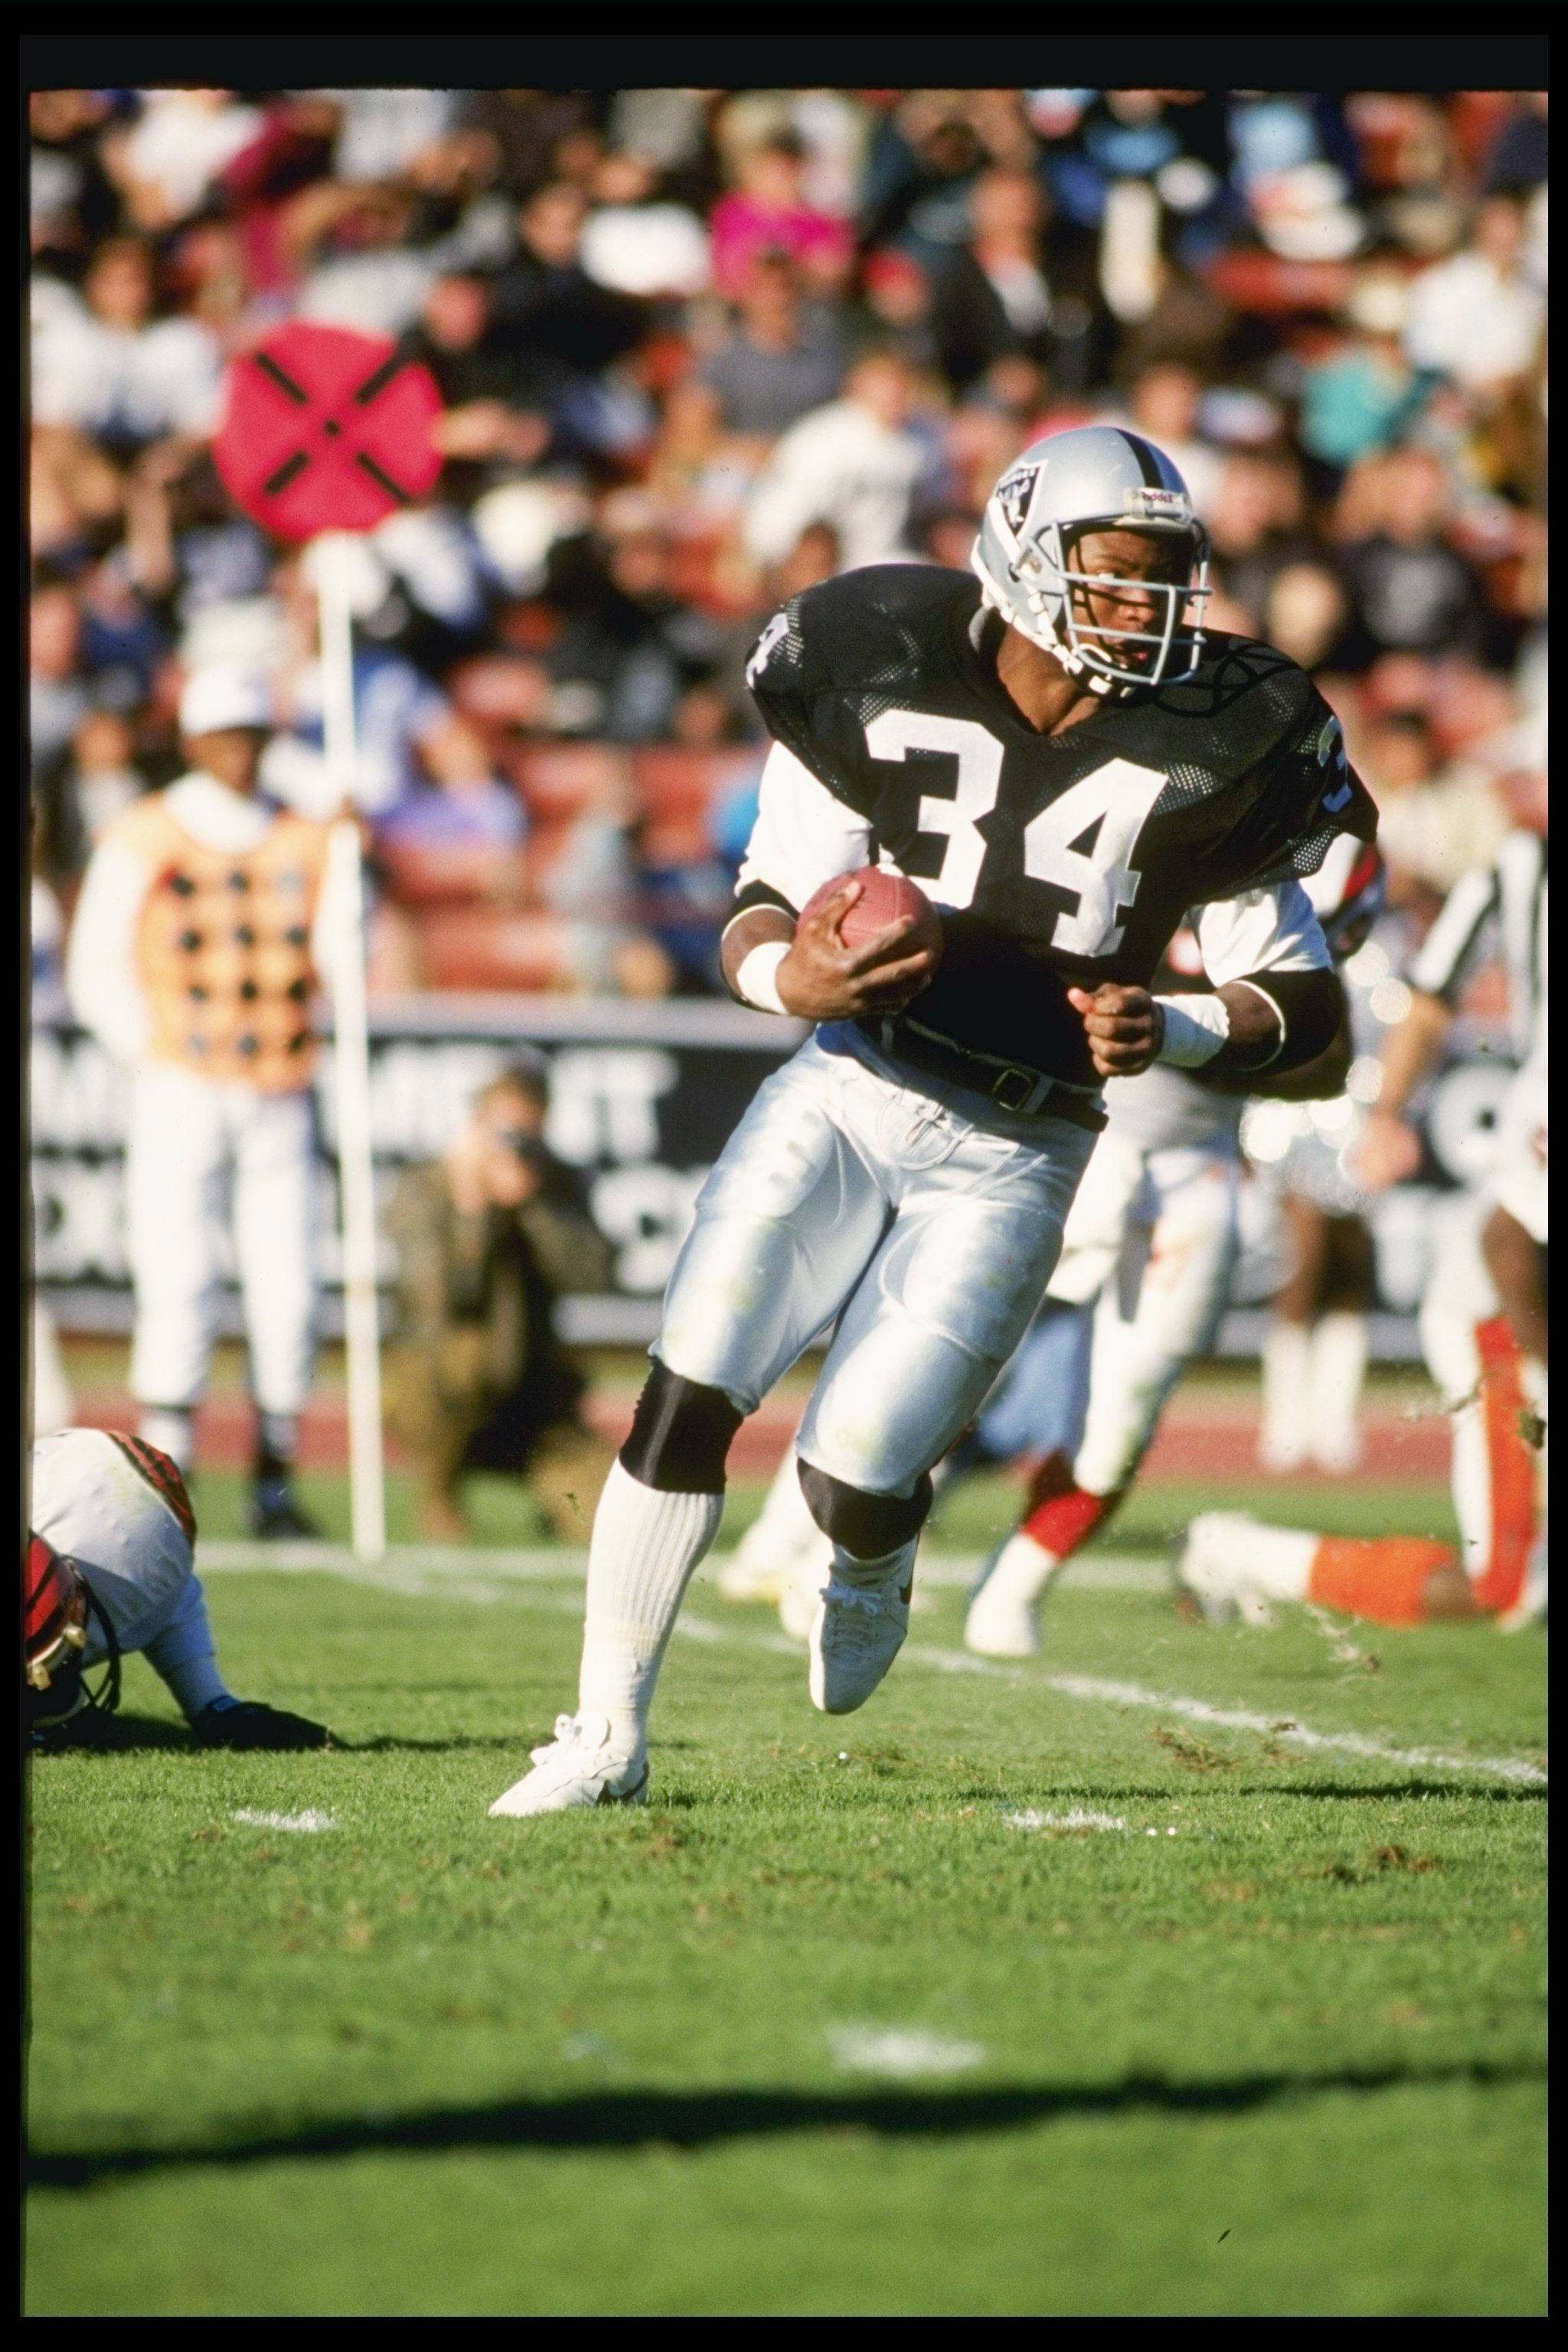 16 Dec 1990: Running back Bo Jackson of the Los Angeles Raiders runs down the field during a game against the Cincinnati Bengals at the Los Angeles Coliseum in Los Angeles, California. The Raiders won the game 24-7.